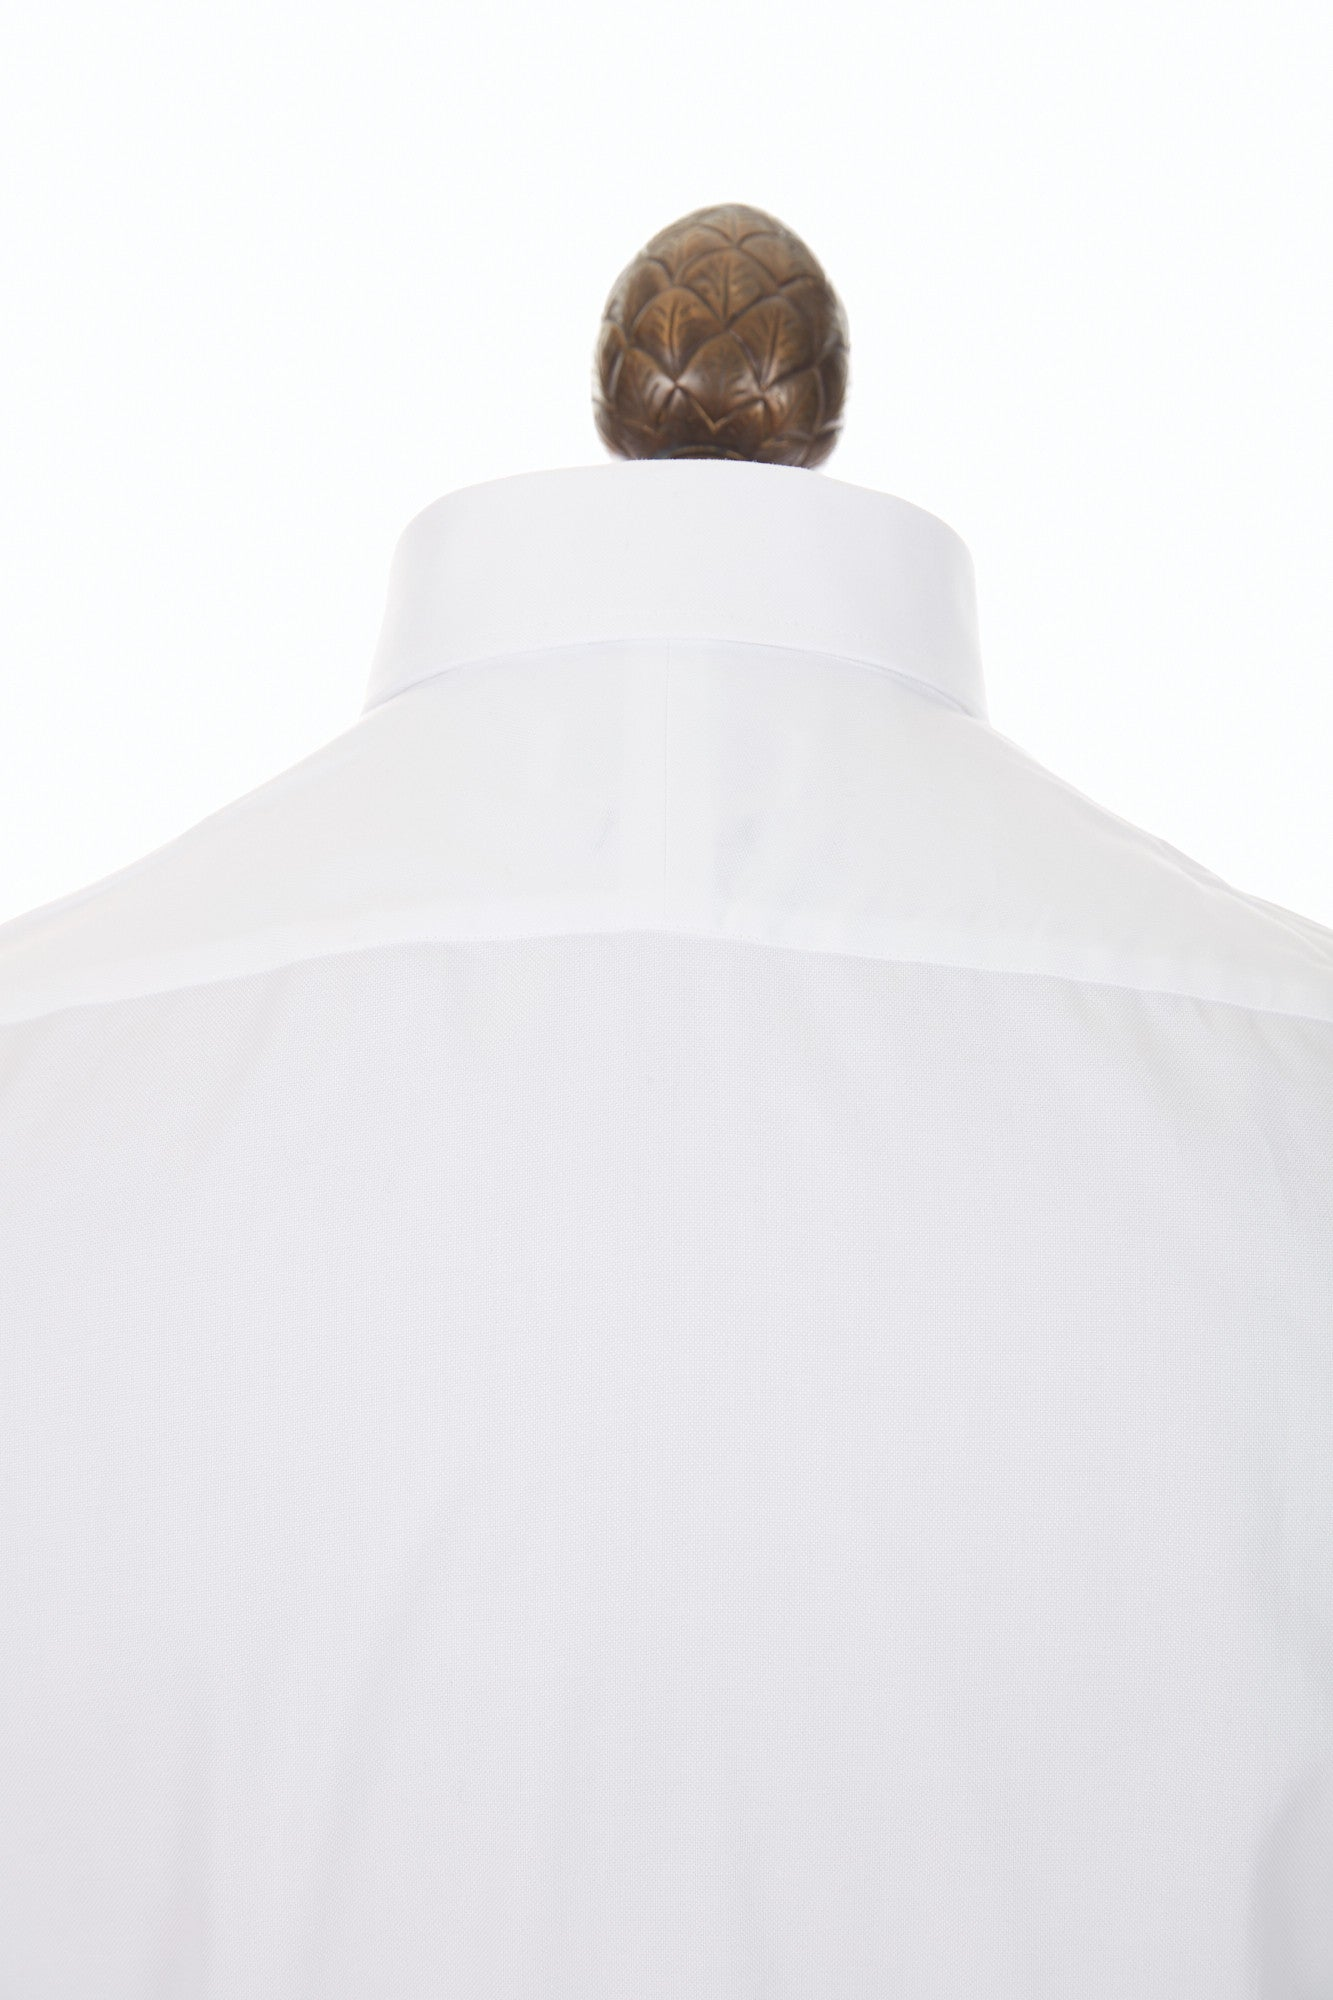 Blazer for Men White Oxford Button-Down Dress Shirt